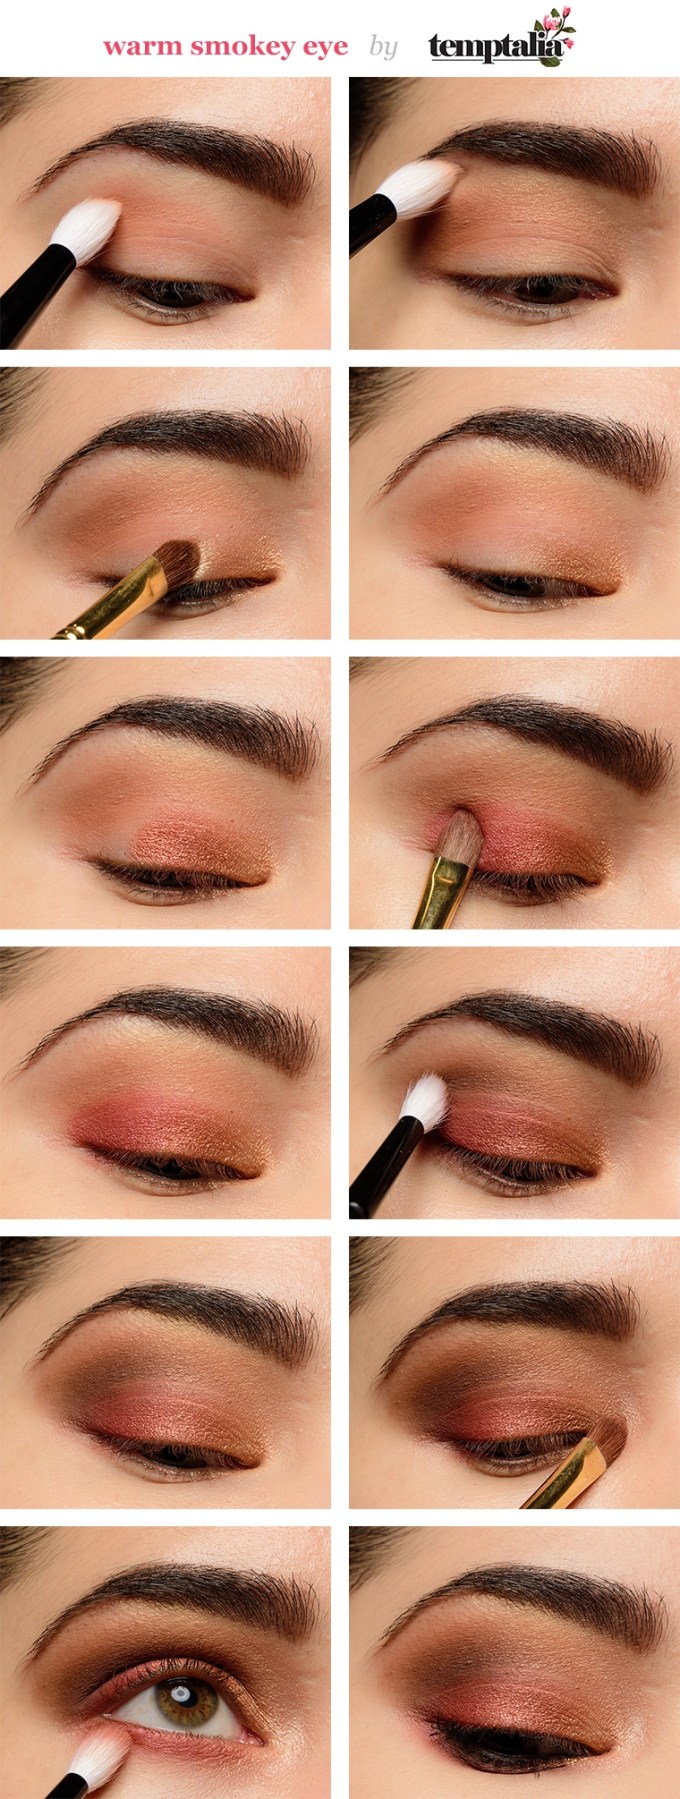 eye makeup for beginners: step-by-step tutorial (2019